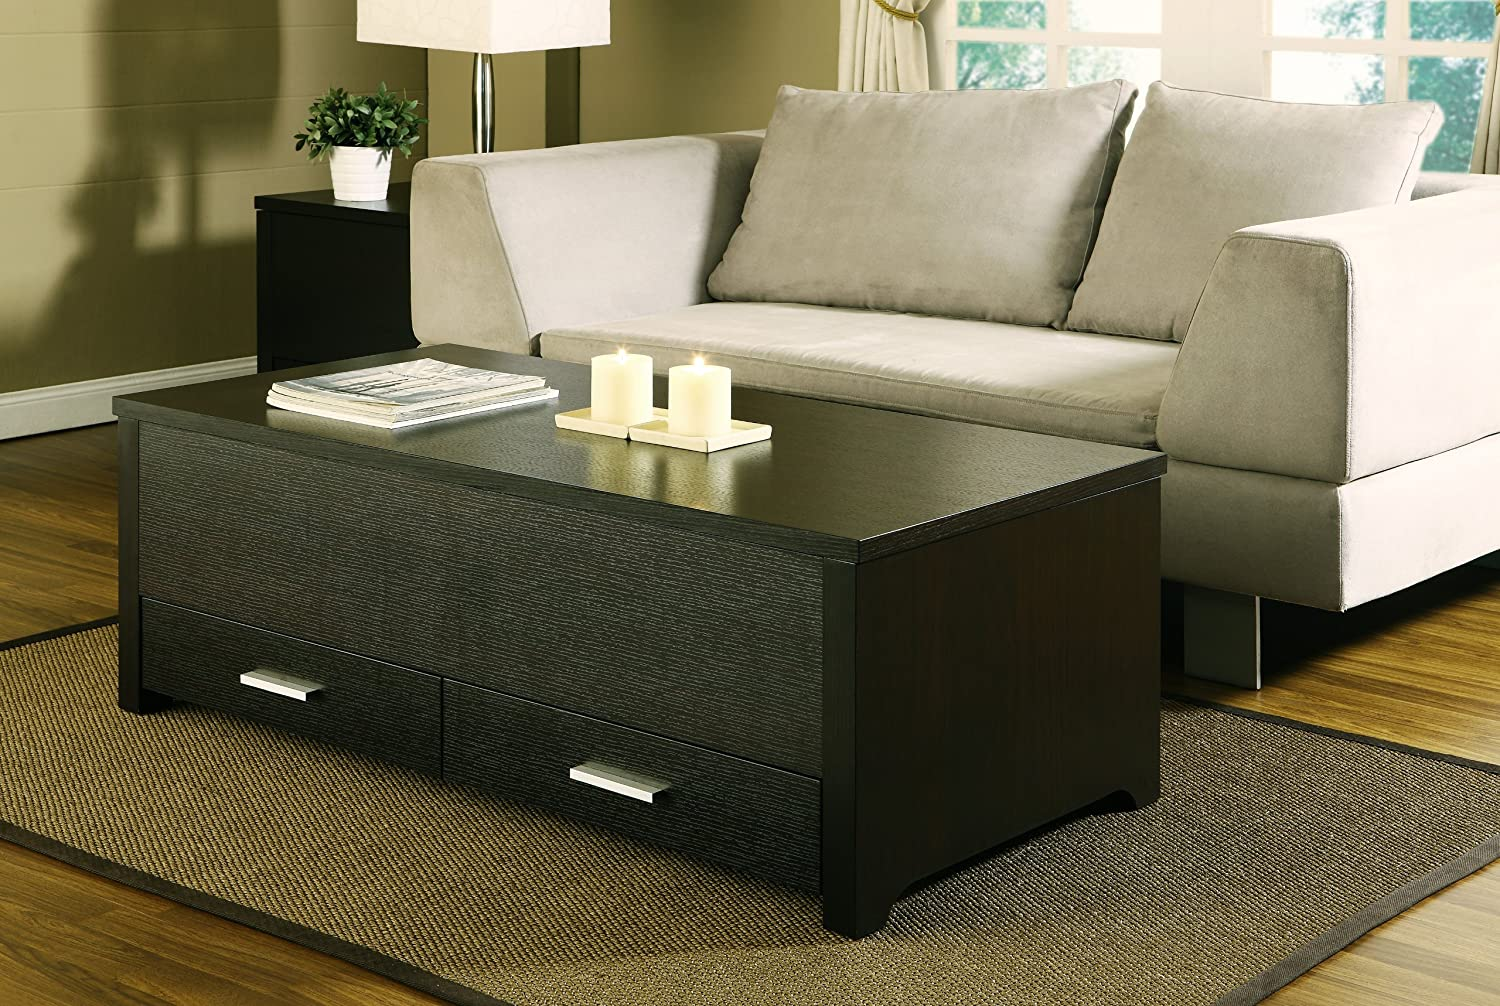 Amazon.com: HOMES: Inside + Out IoHOMES Achley Trunk Style Coffee Table,  Dark Espresso: Kitchen U0026 Dining